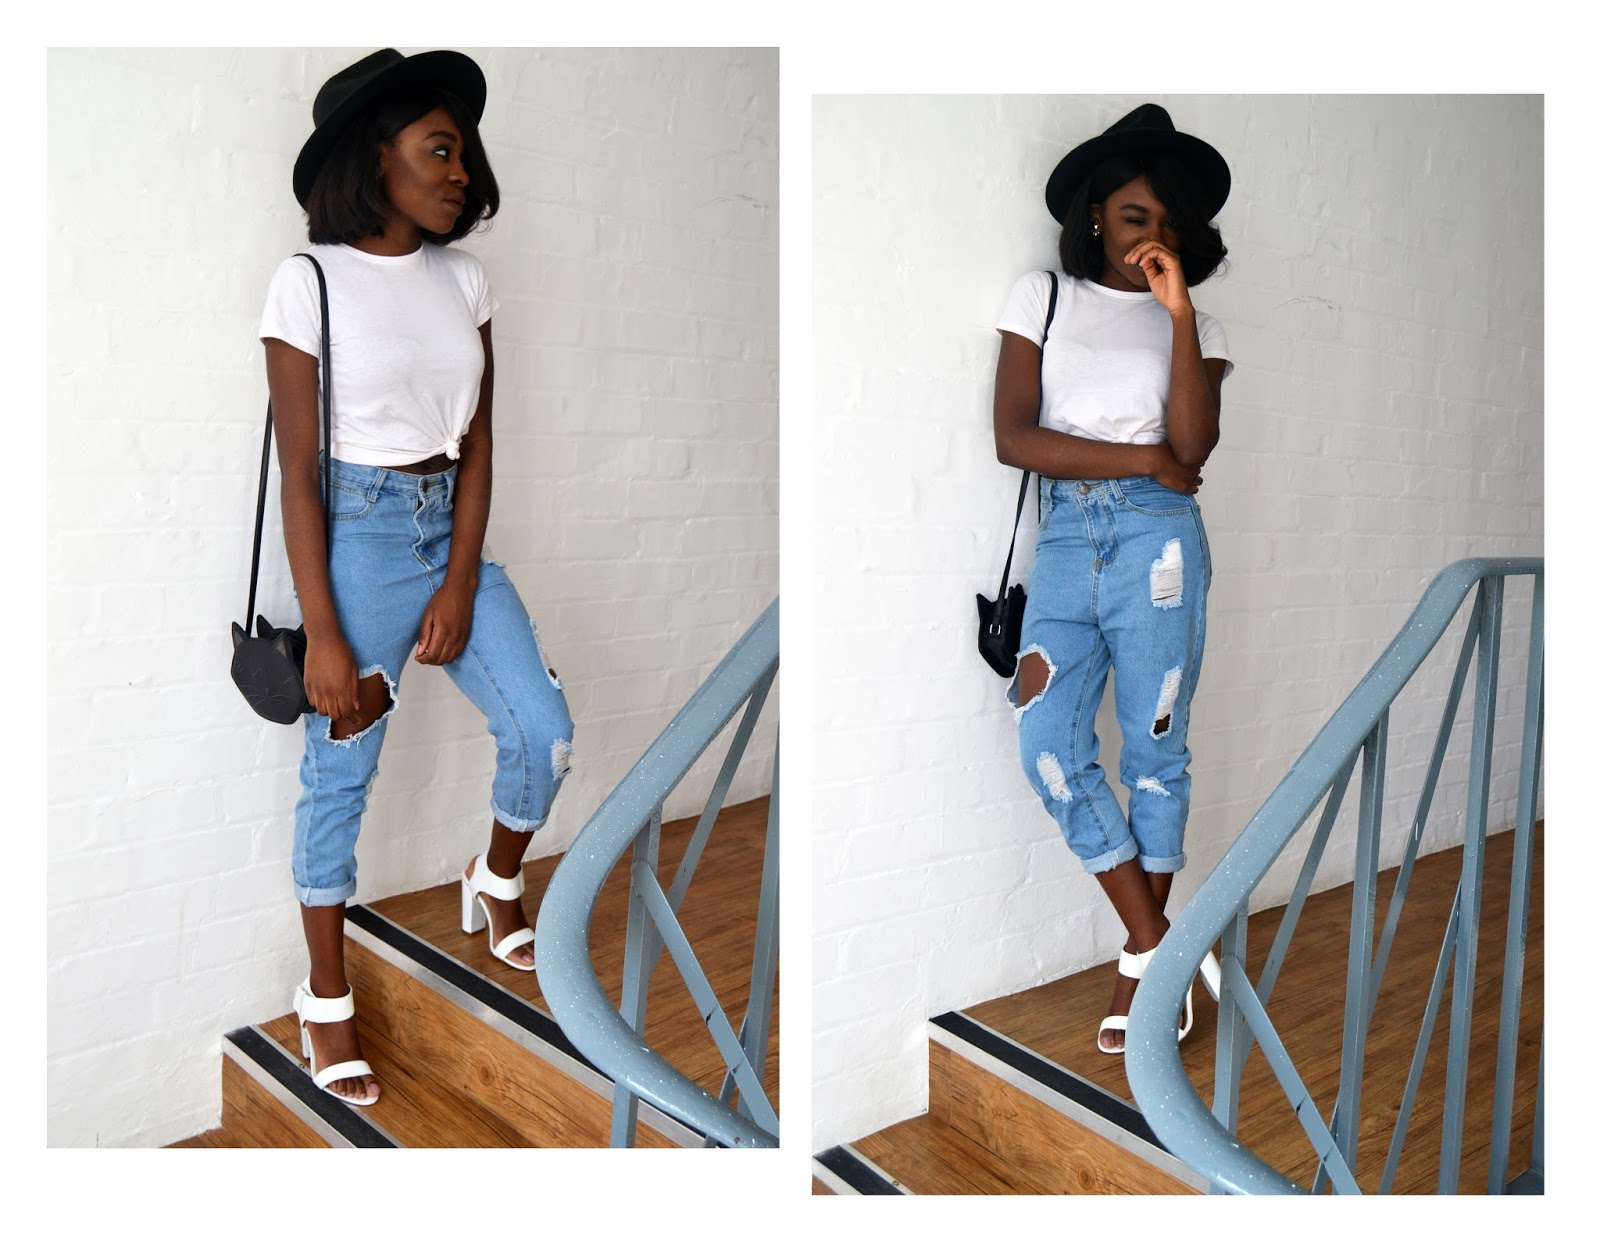 Closet Confidential, Boyfriend jeans, minimal, minimalist, wide brim hat, family, melanin, industrial, mill, african, family,brother,black boy, black girl, white tee,block heels,distressed,cat bag,kawaii